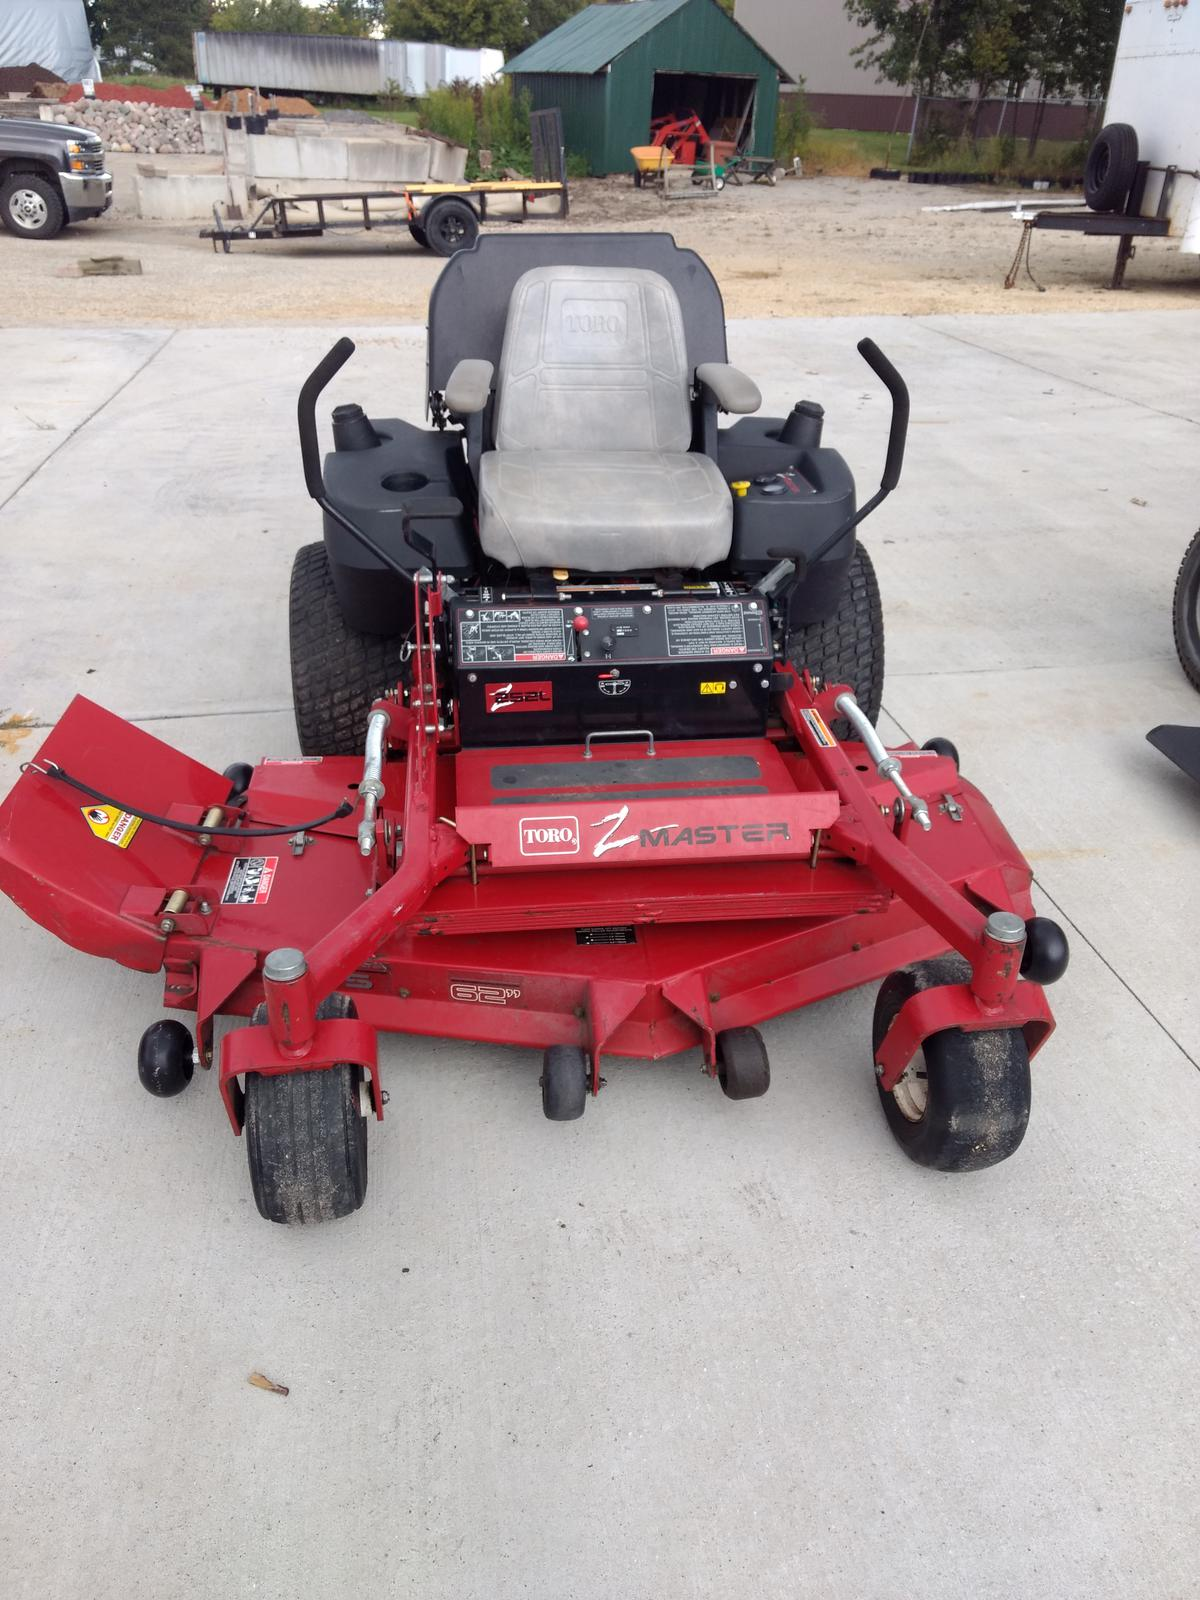 Inventory Integrity Lawn Service Ripon, WI (920) 748-5013